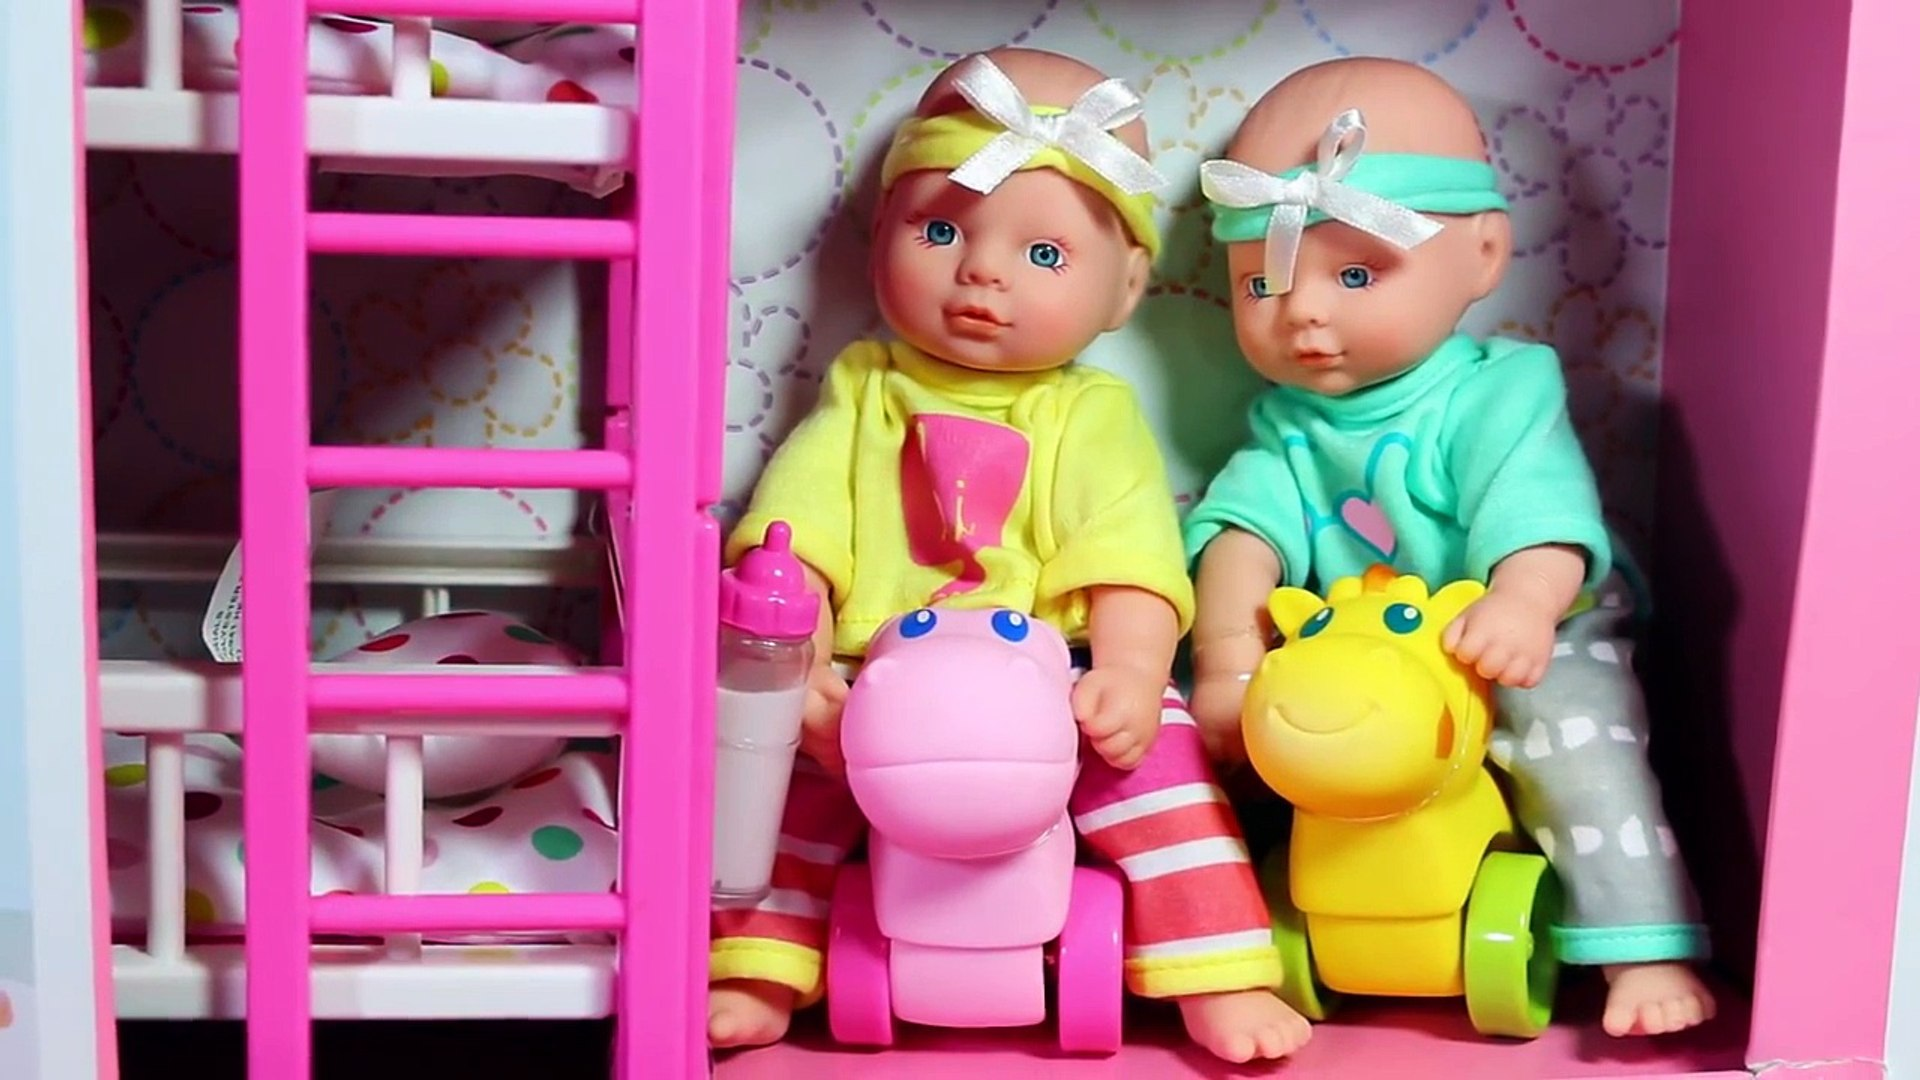 Baby Alive Bunk Beds From Kidkraft Great For Twin Dolls Or 2 Baby Alive Toddler Dolls Disn Dailymotion Video